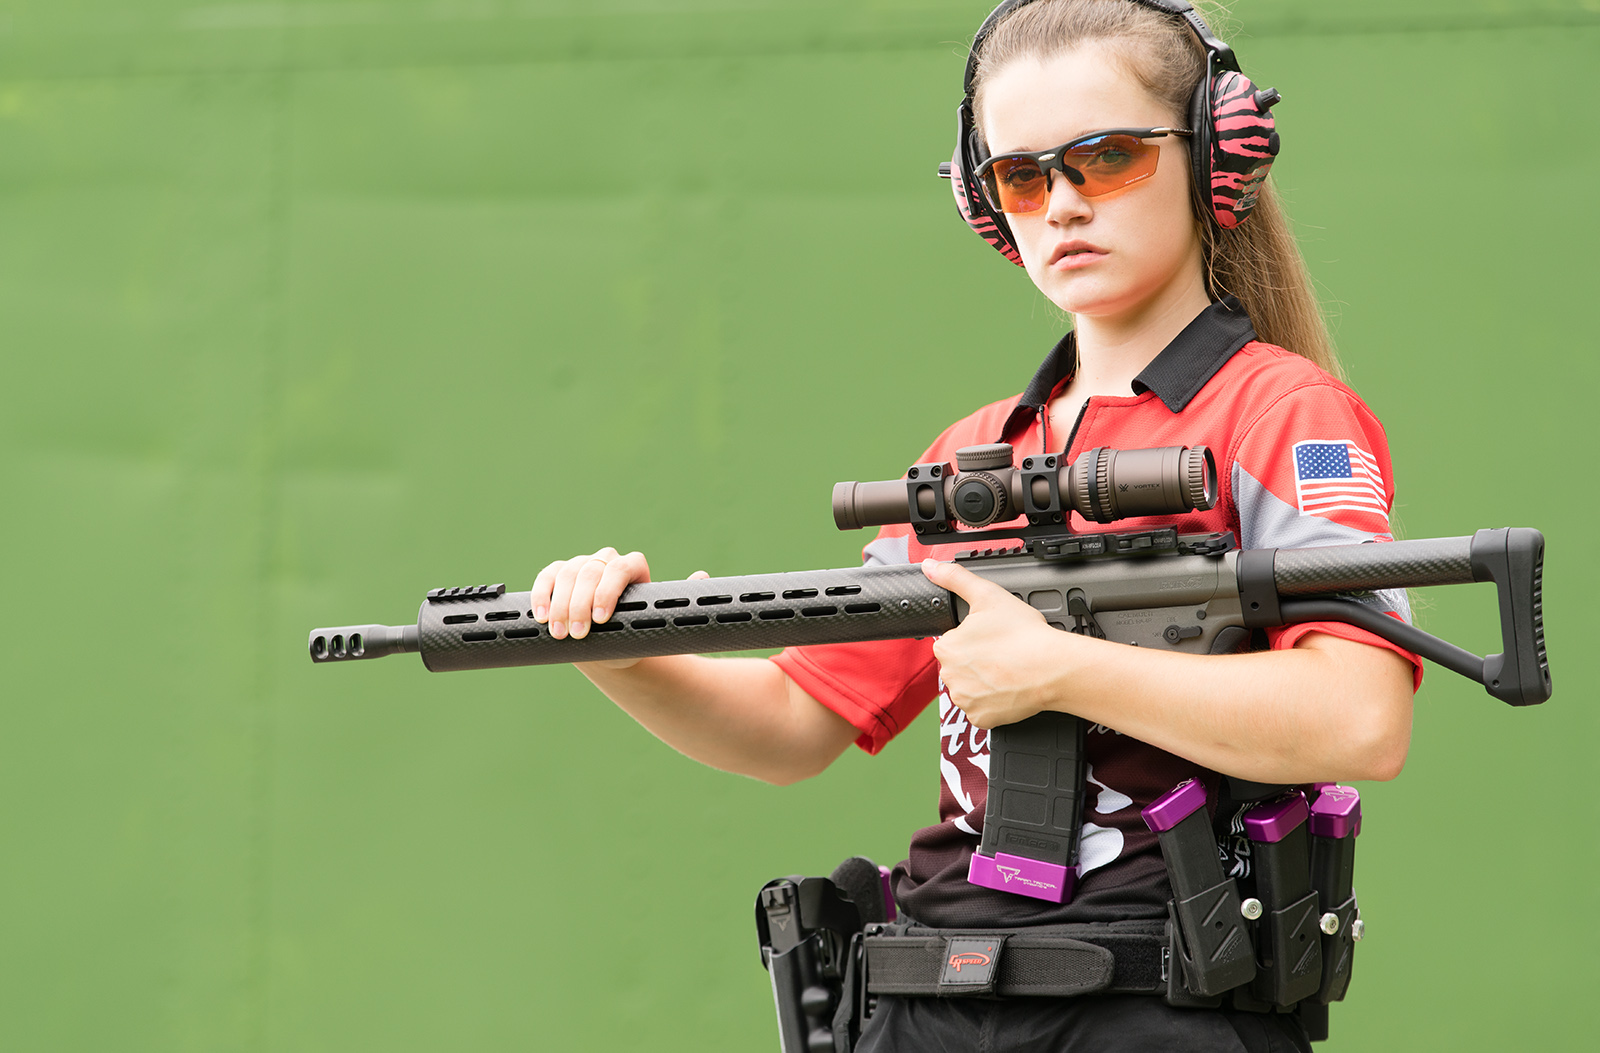 Competition Rifles: Bringing the Point of Balance Back